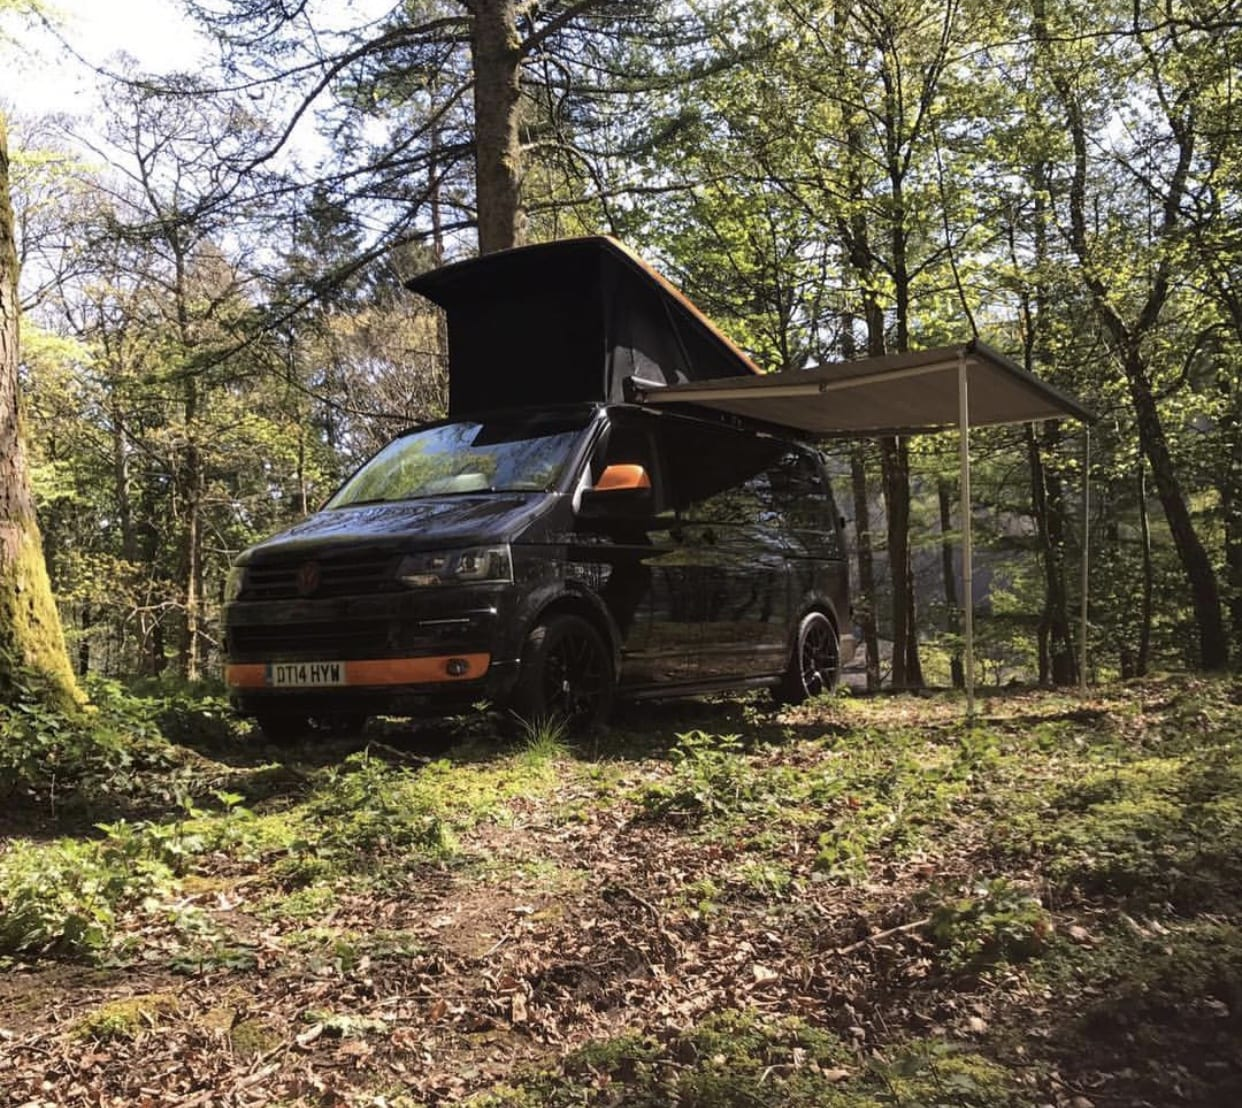 Fiamma Awning optional extra on camper van conversion